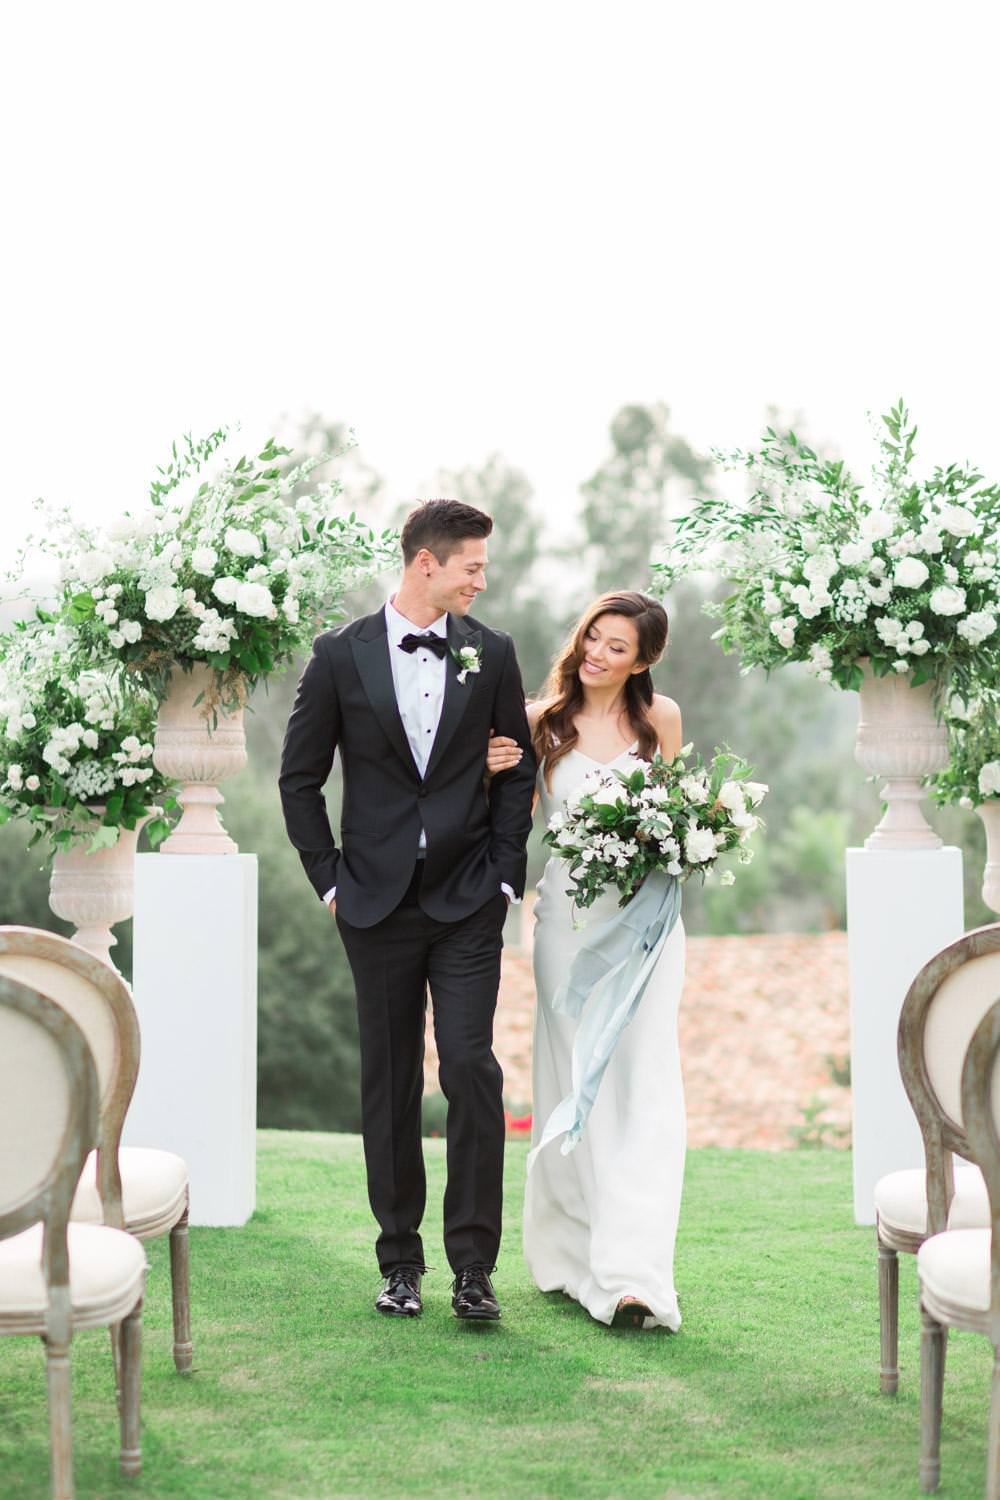 Rancho Valencia Wedding Photography by Cavin Elizabeth, ceremony bride and groom walking down the aisle